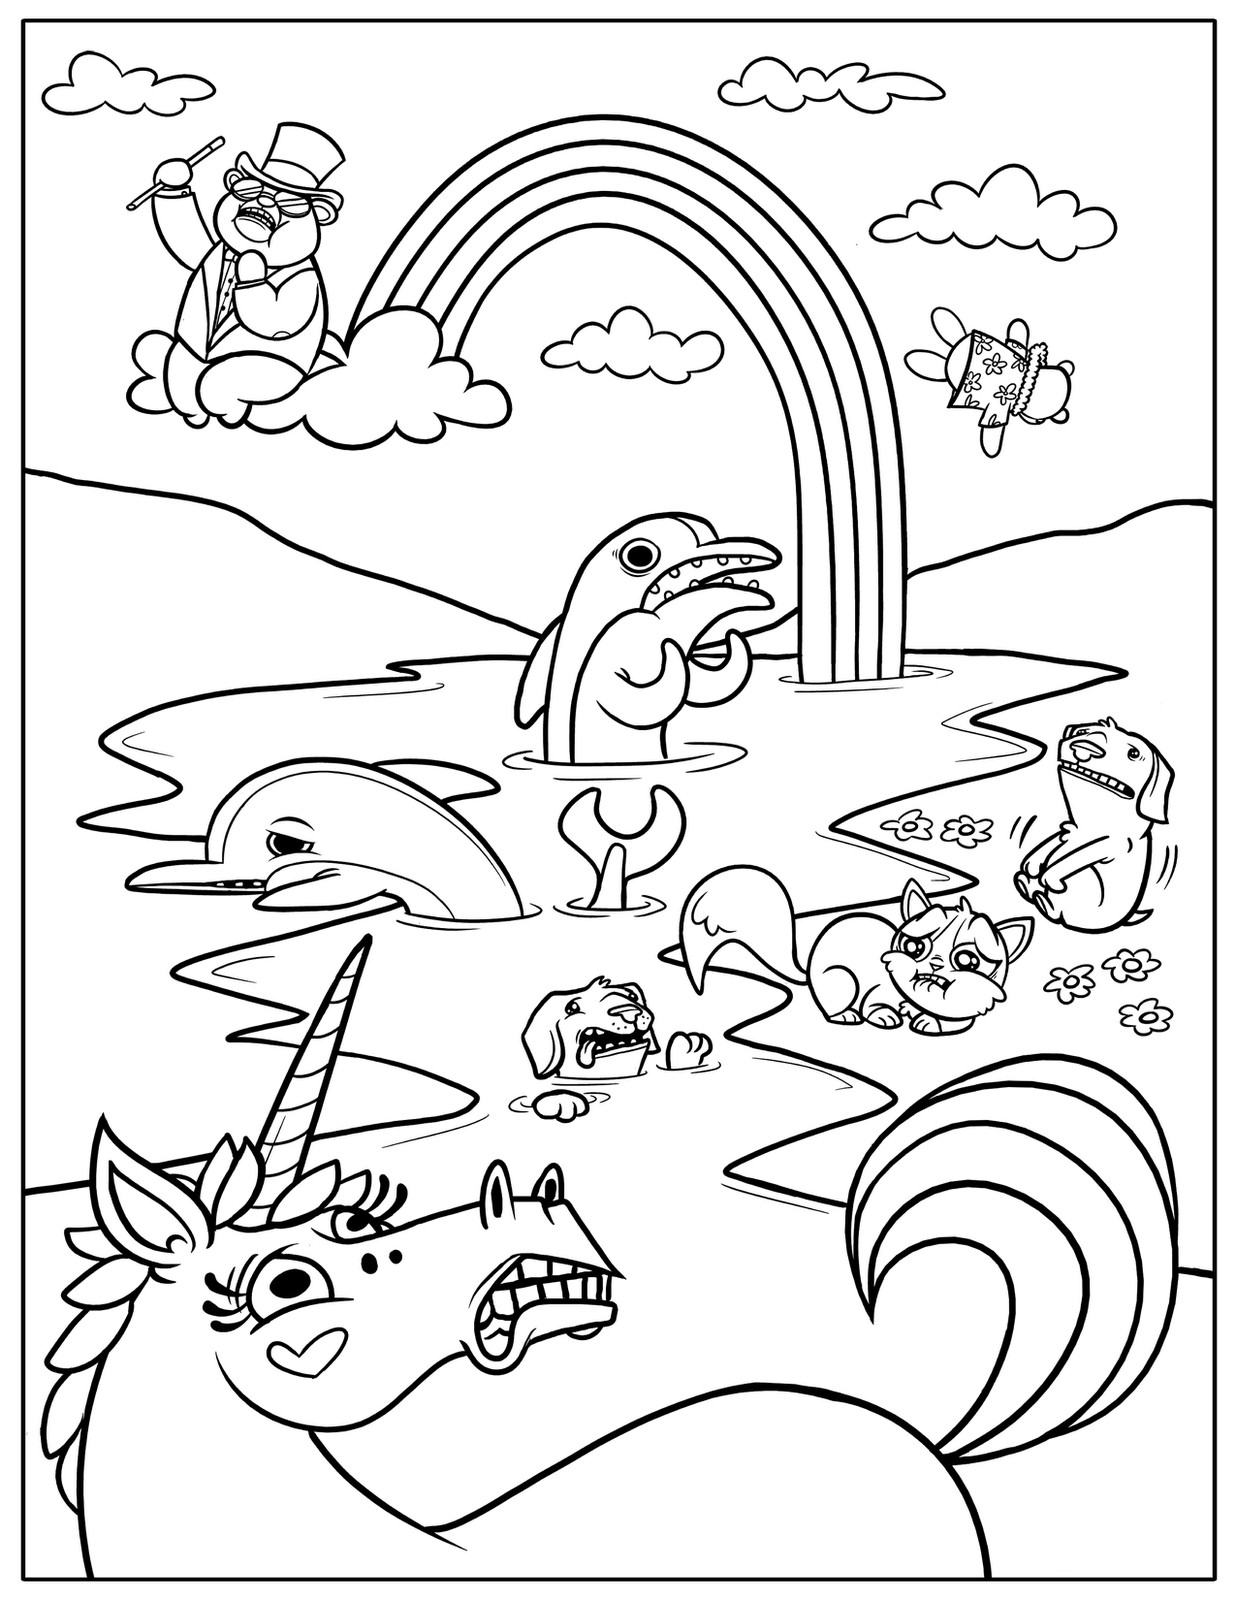 Coloring Pages For Kids Games  Free Printable Rainbow Coloring Pages For Kids